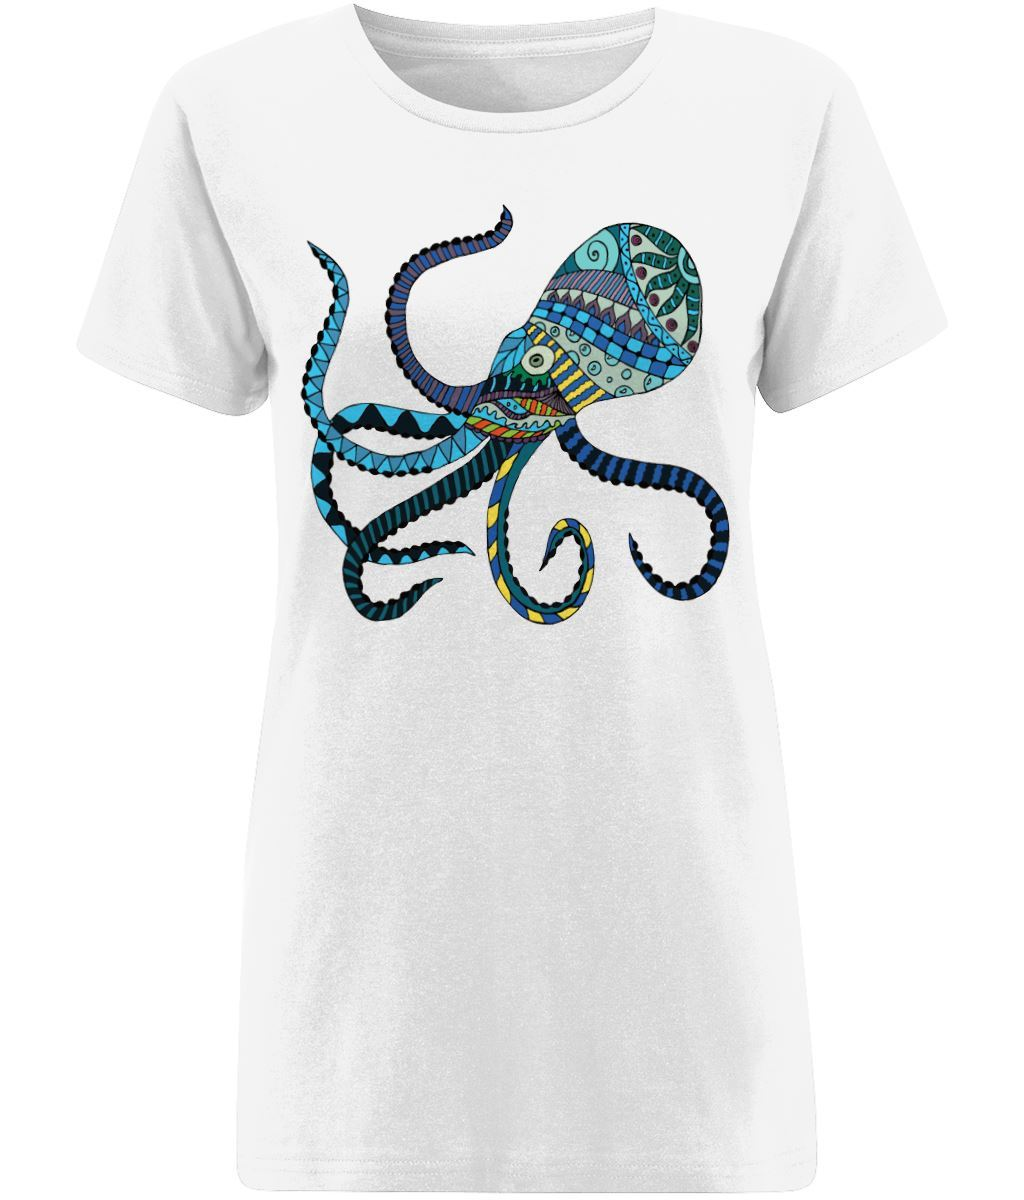 Blue Octopus T-shirt Clothing IndianBelieves X-Small White